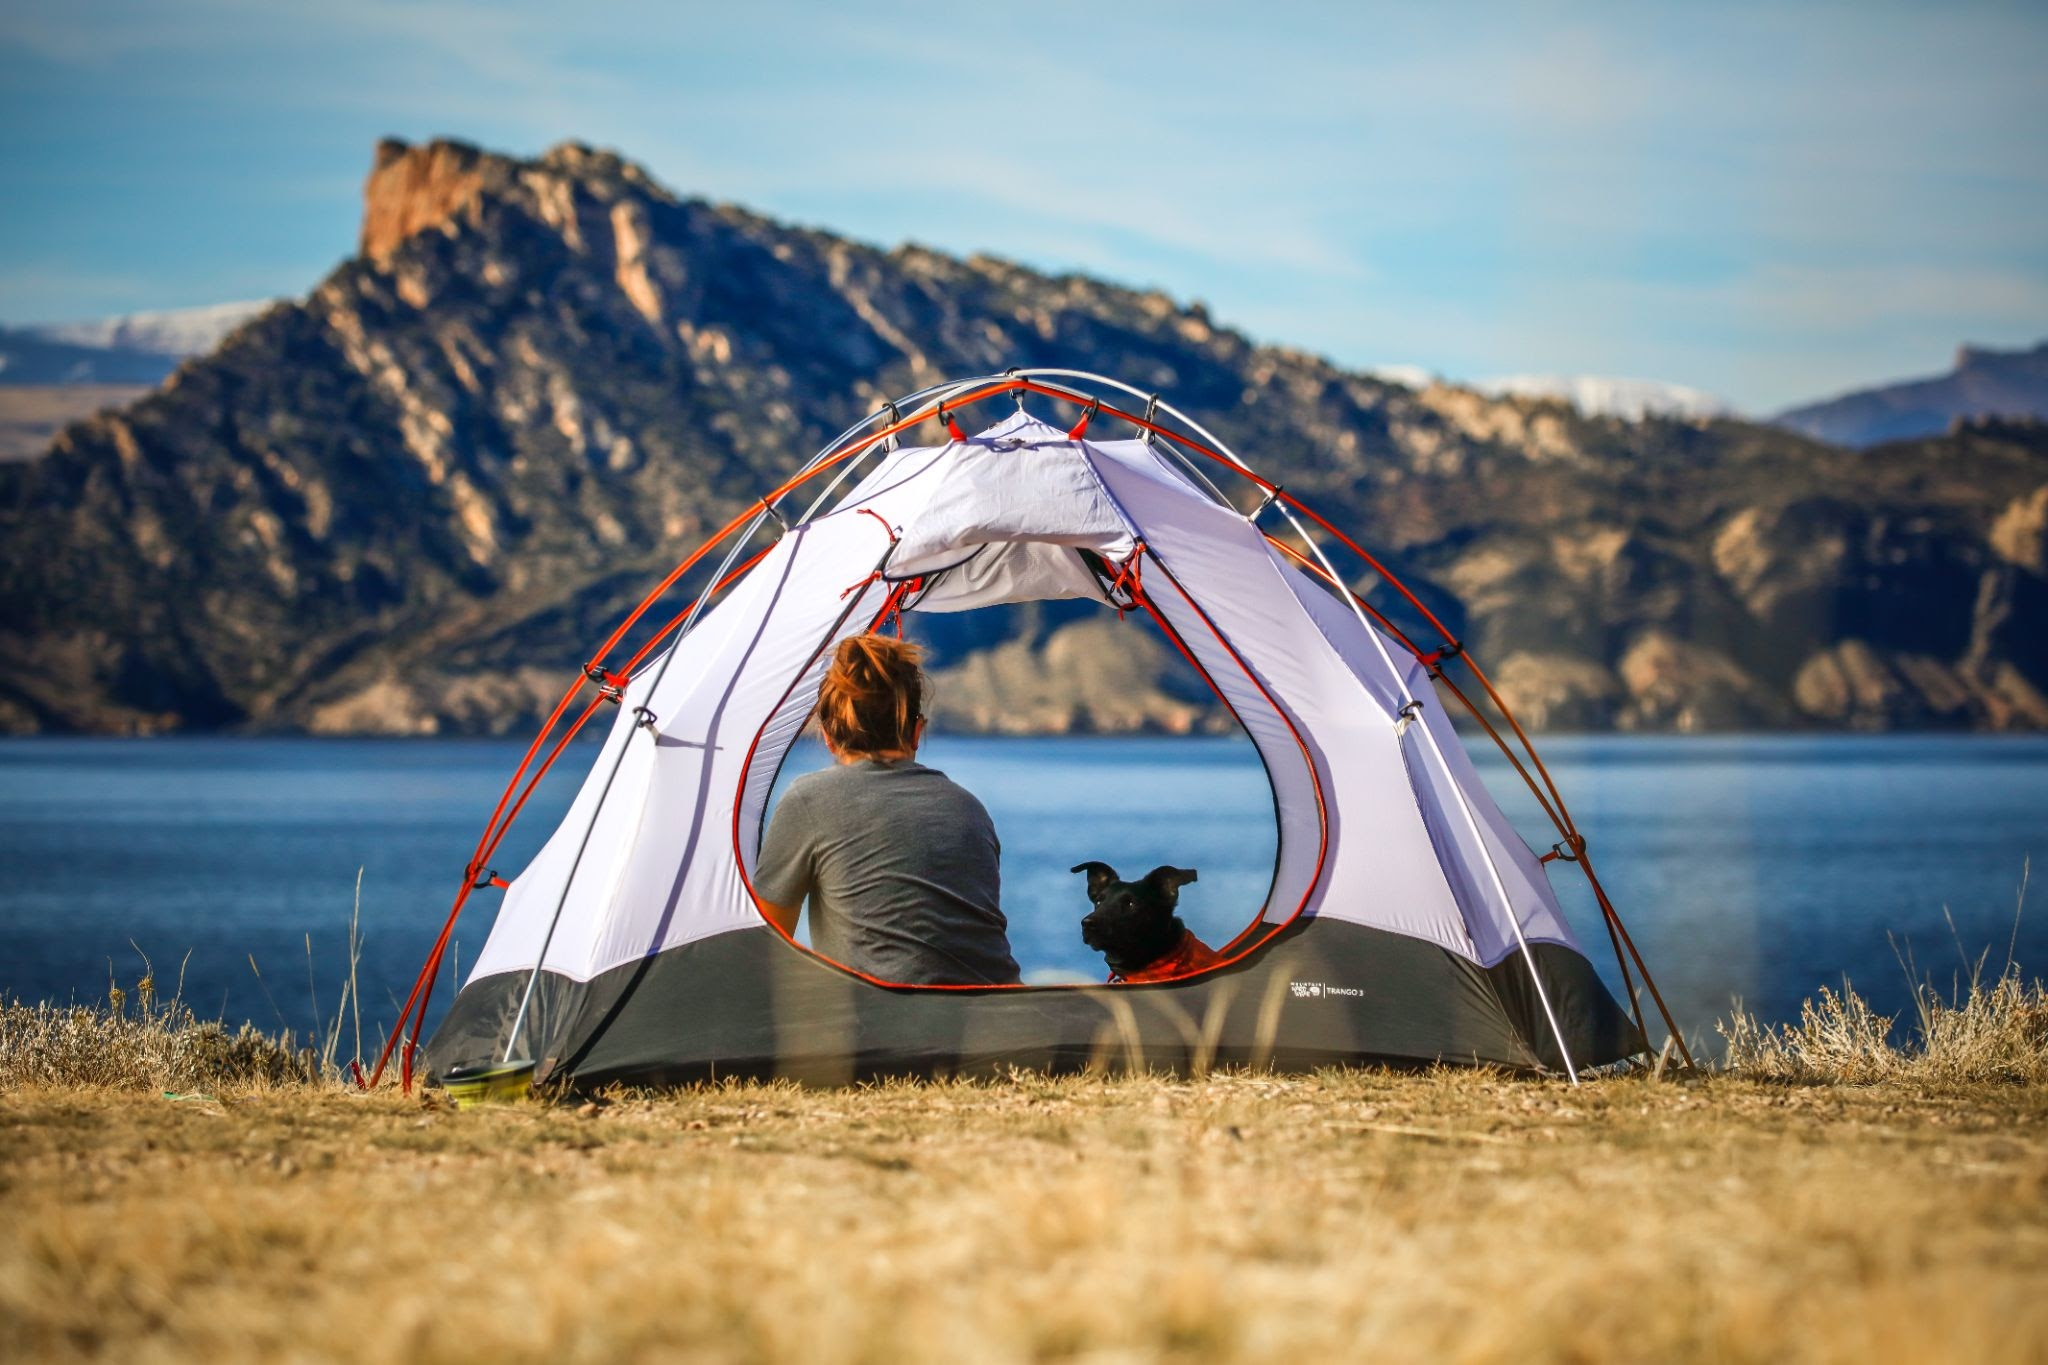 manage RV park members and guests better